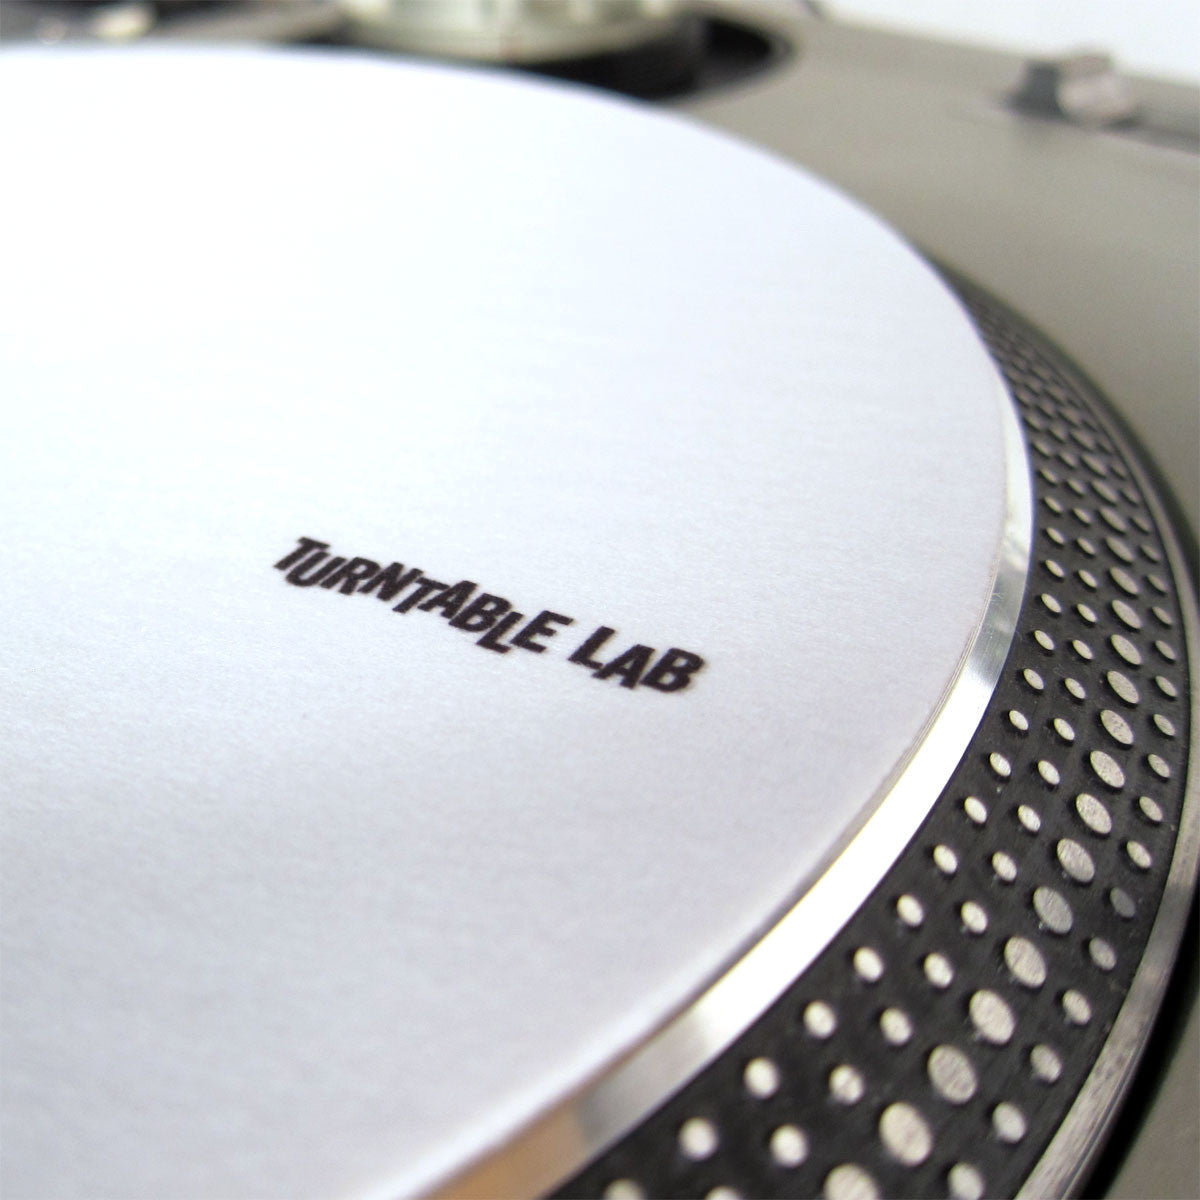 Turntable Lab: Audiosetup Slipmats Various white turntable